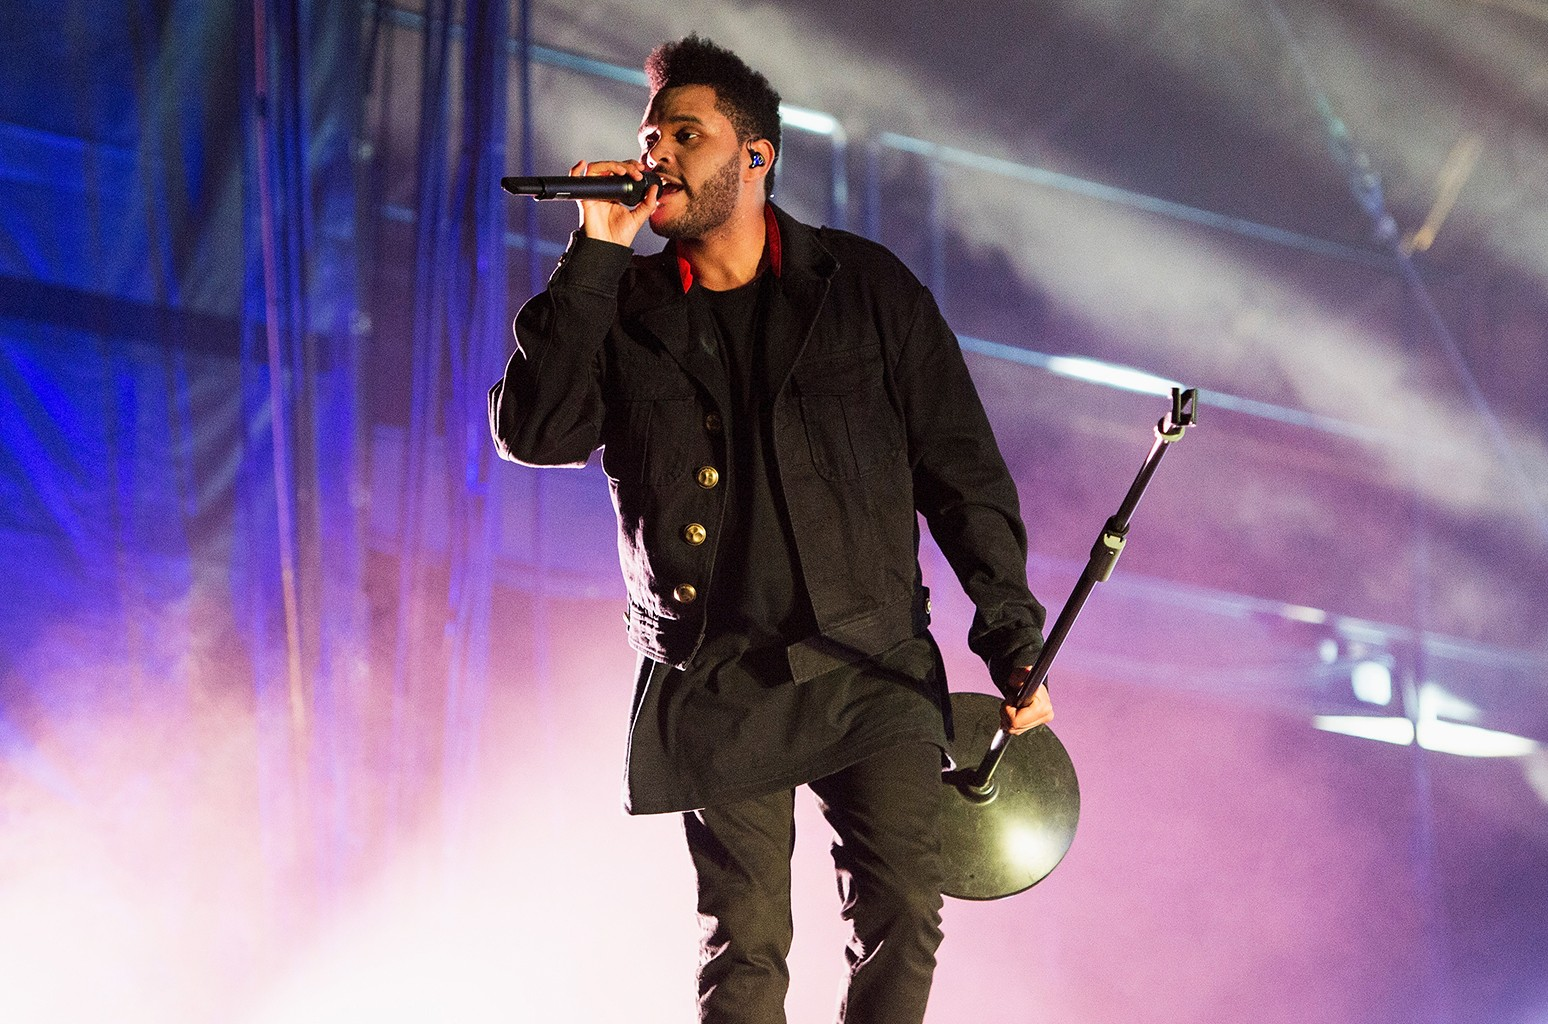 The Weeknd performs in 2016